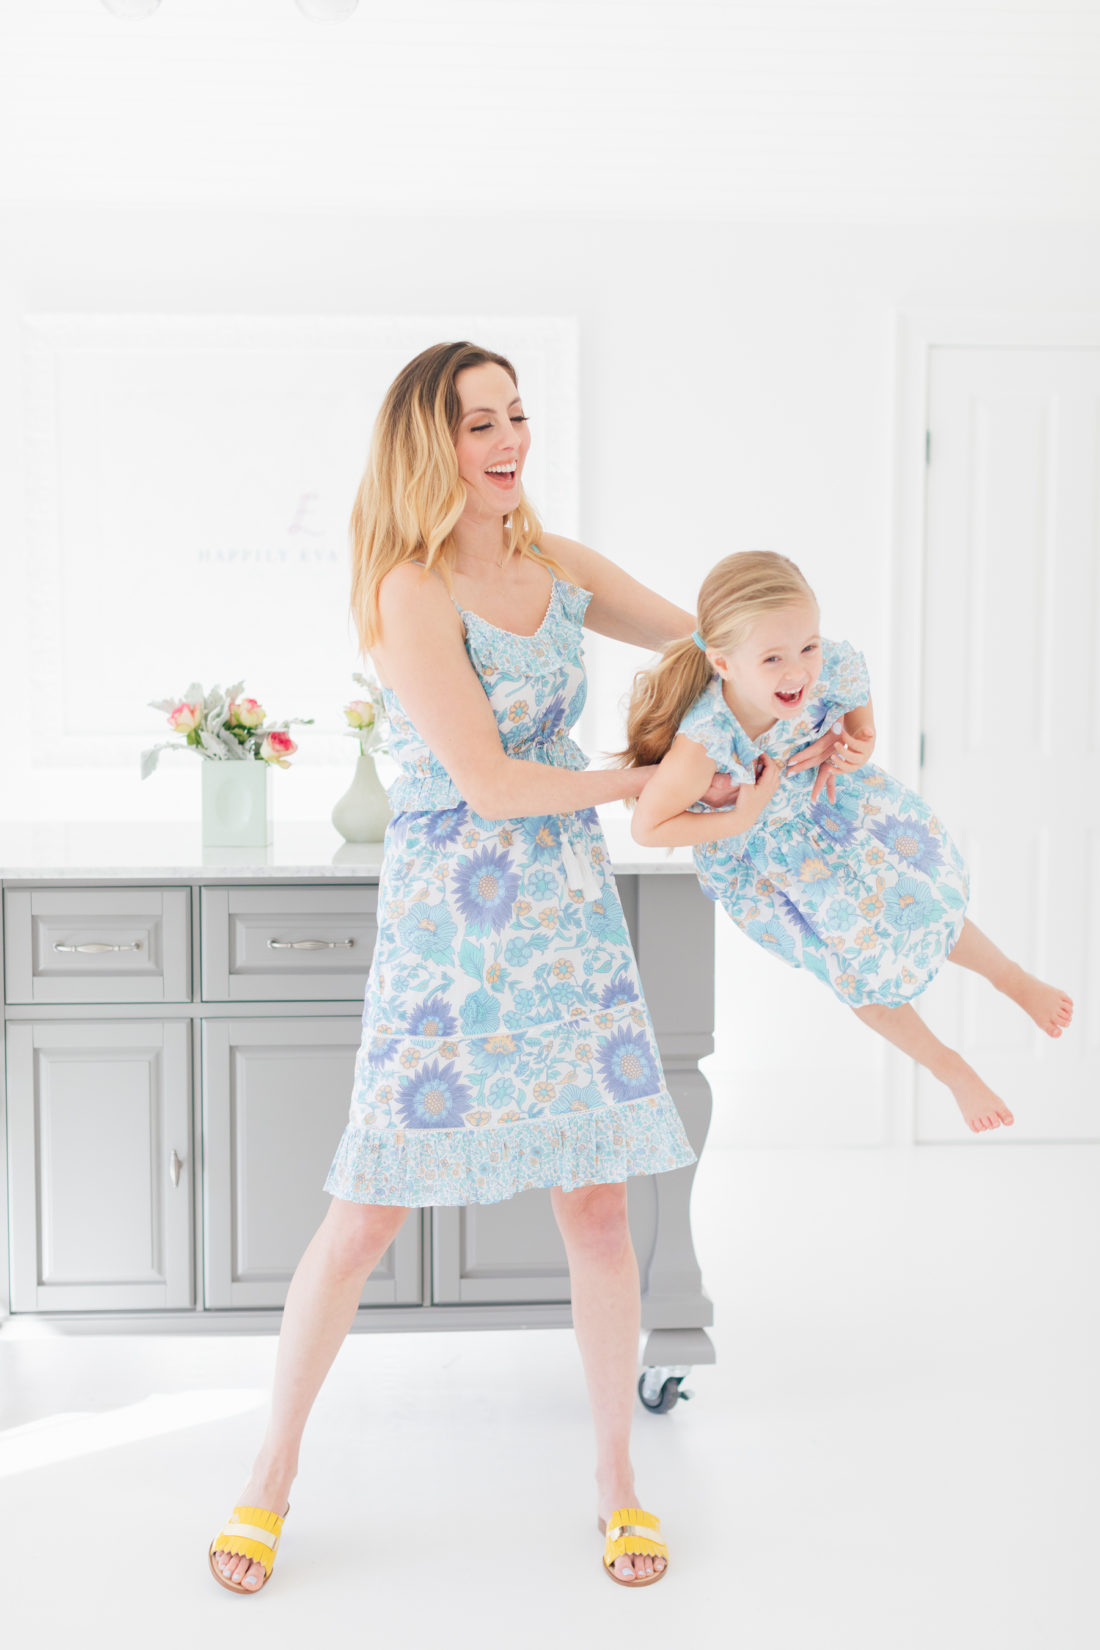 Eva Amurri Martino swings daughter Marlowe in her arms while wearing matching floral printed dresses from the Happily Eva After x Masala Baby capsule collection